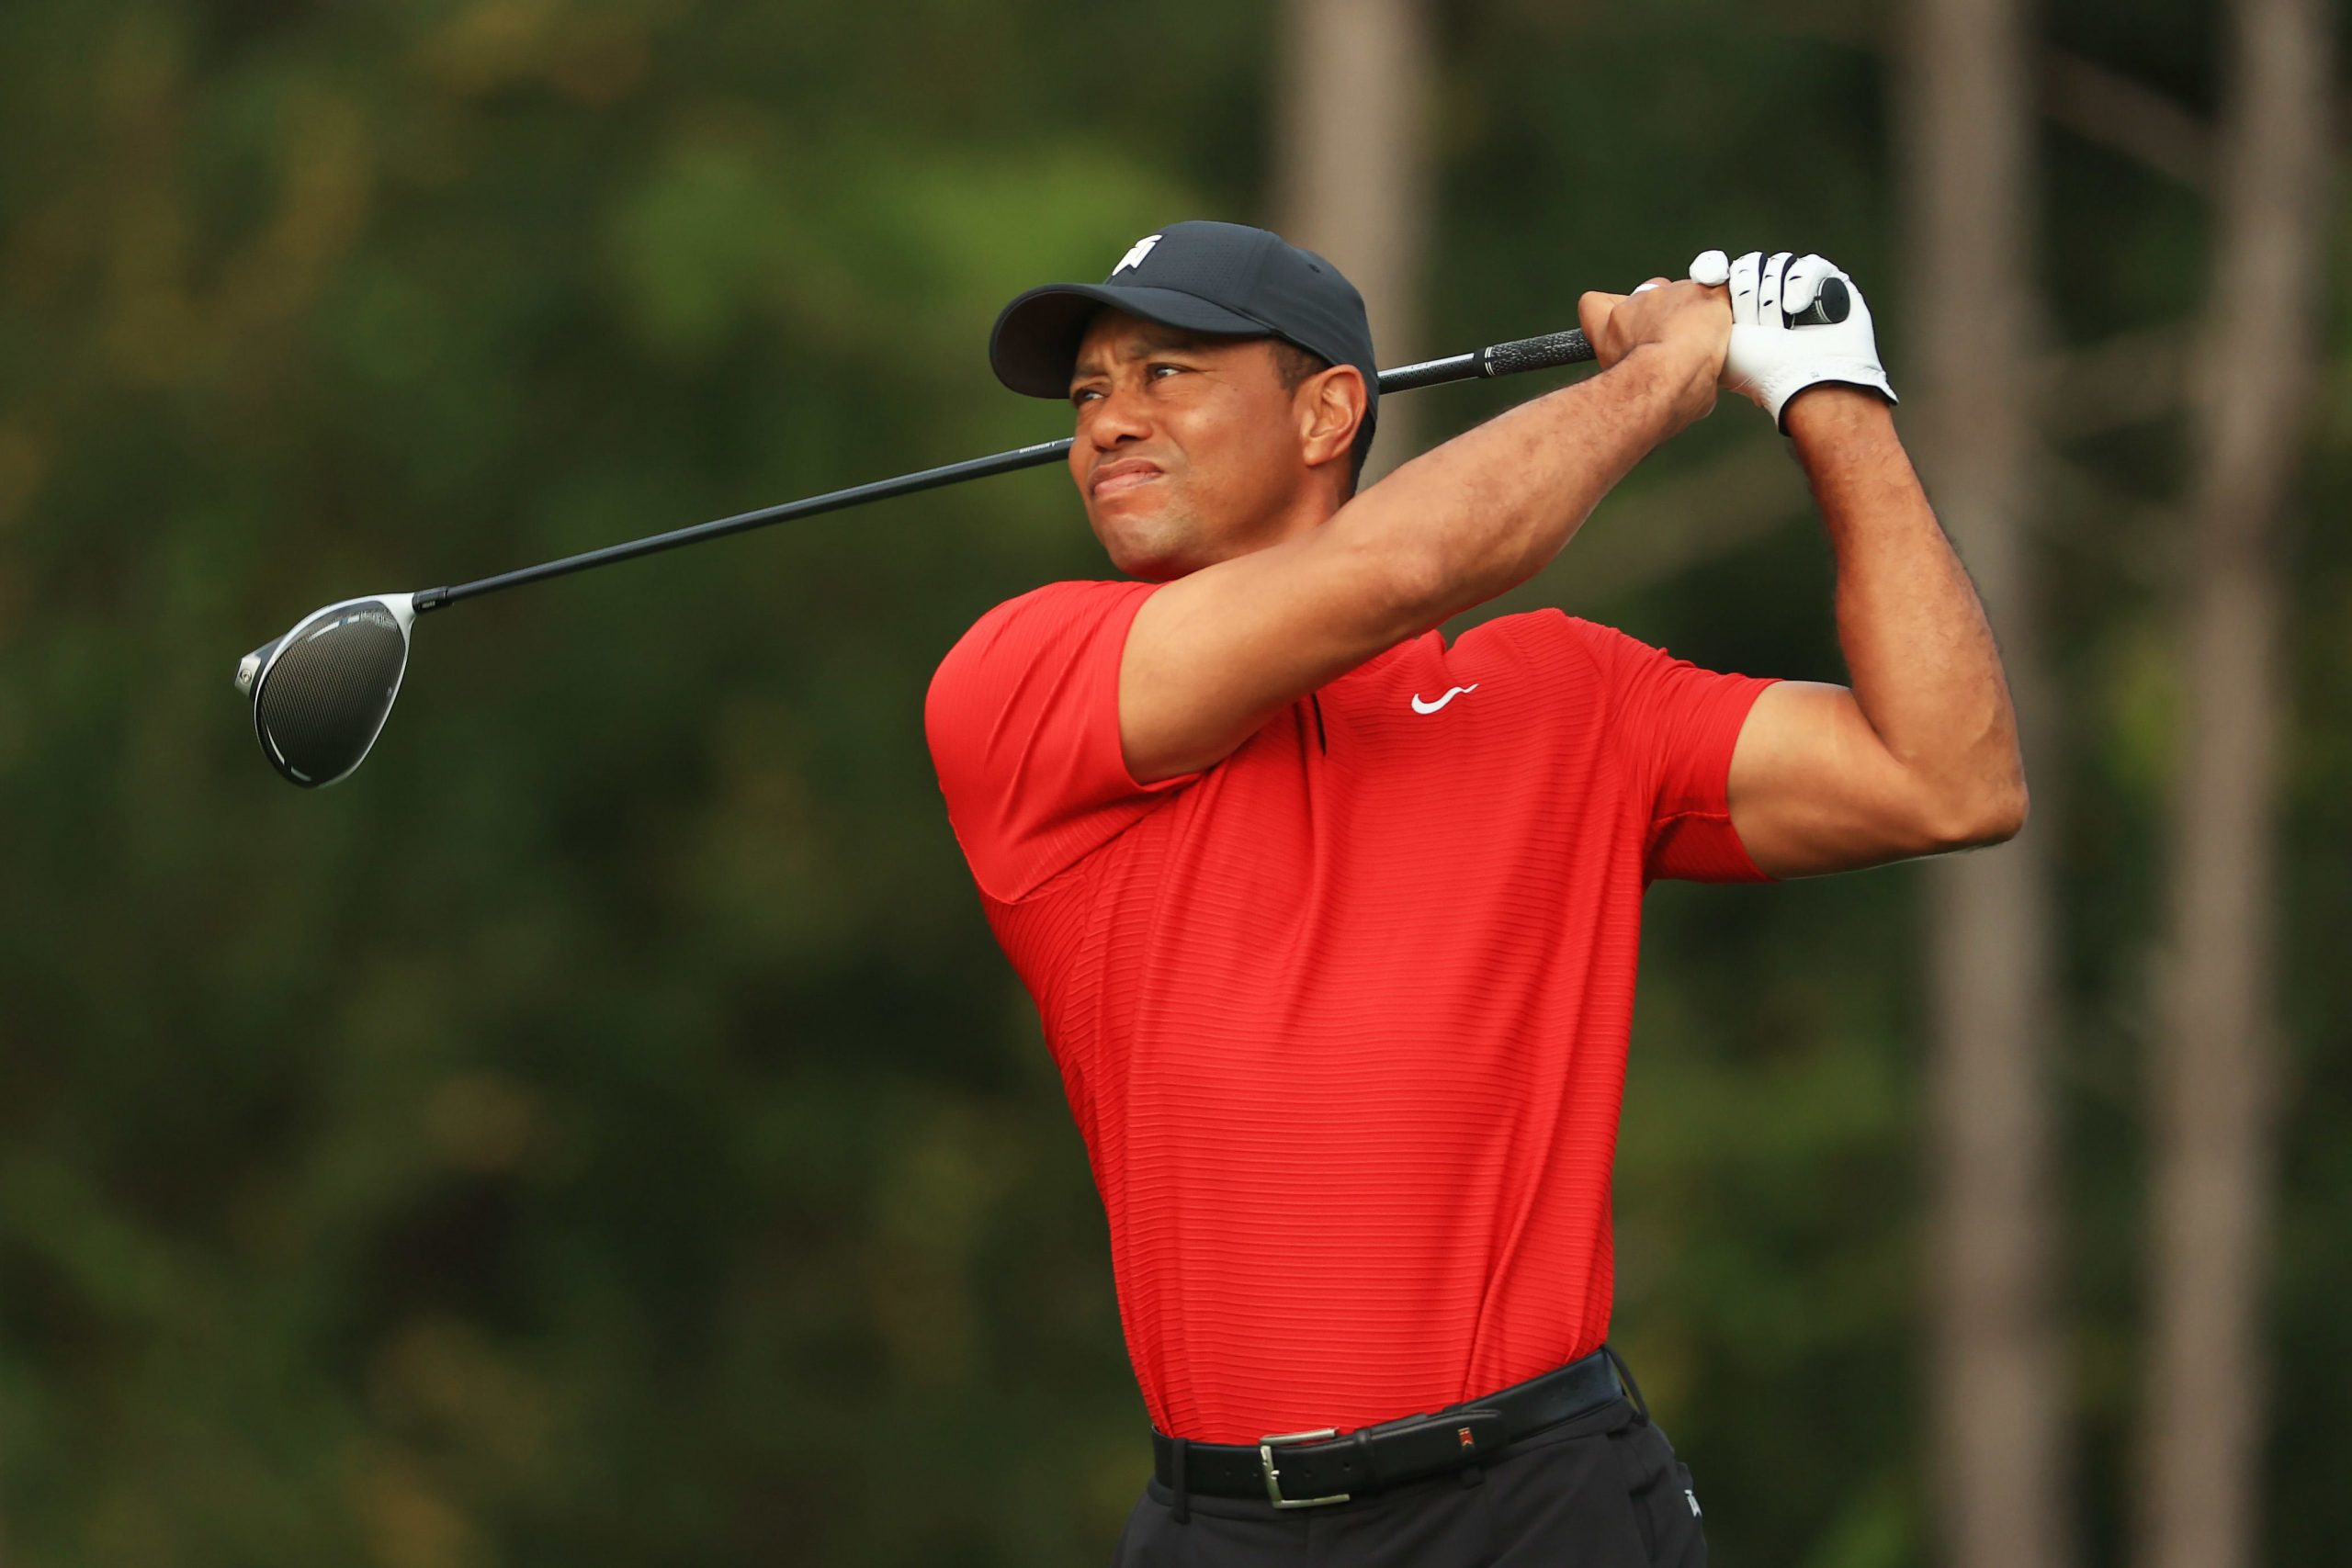 Tiger Woods returns to golf video games for the first time since 2013